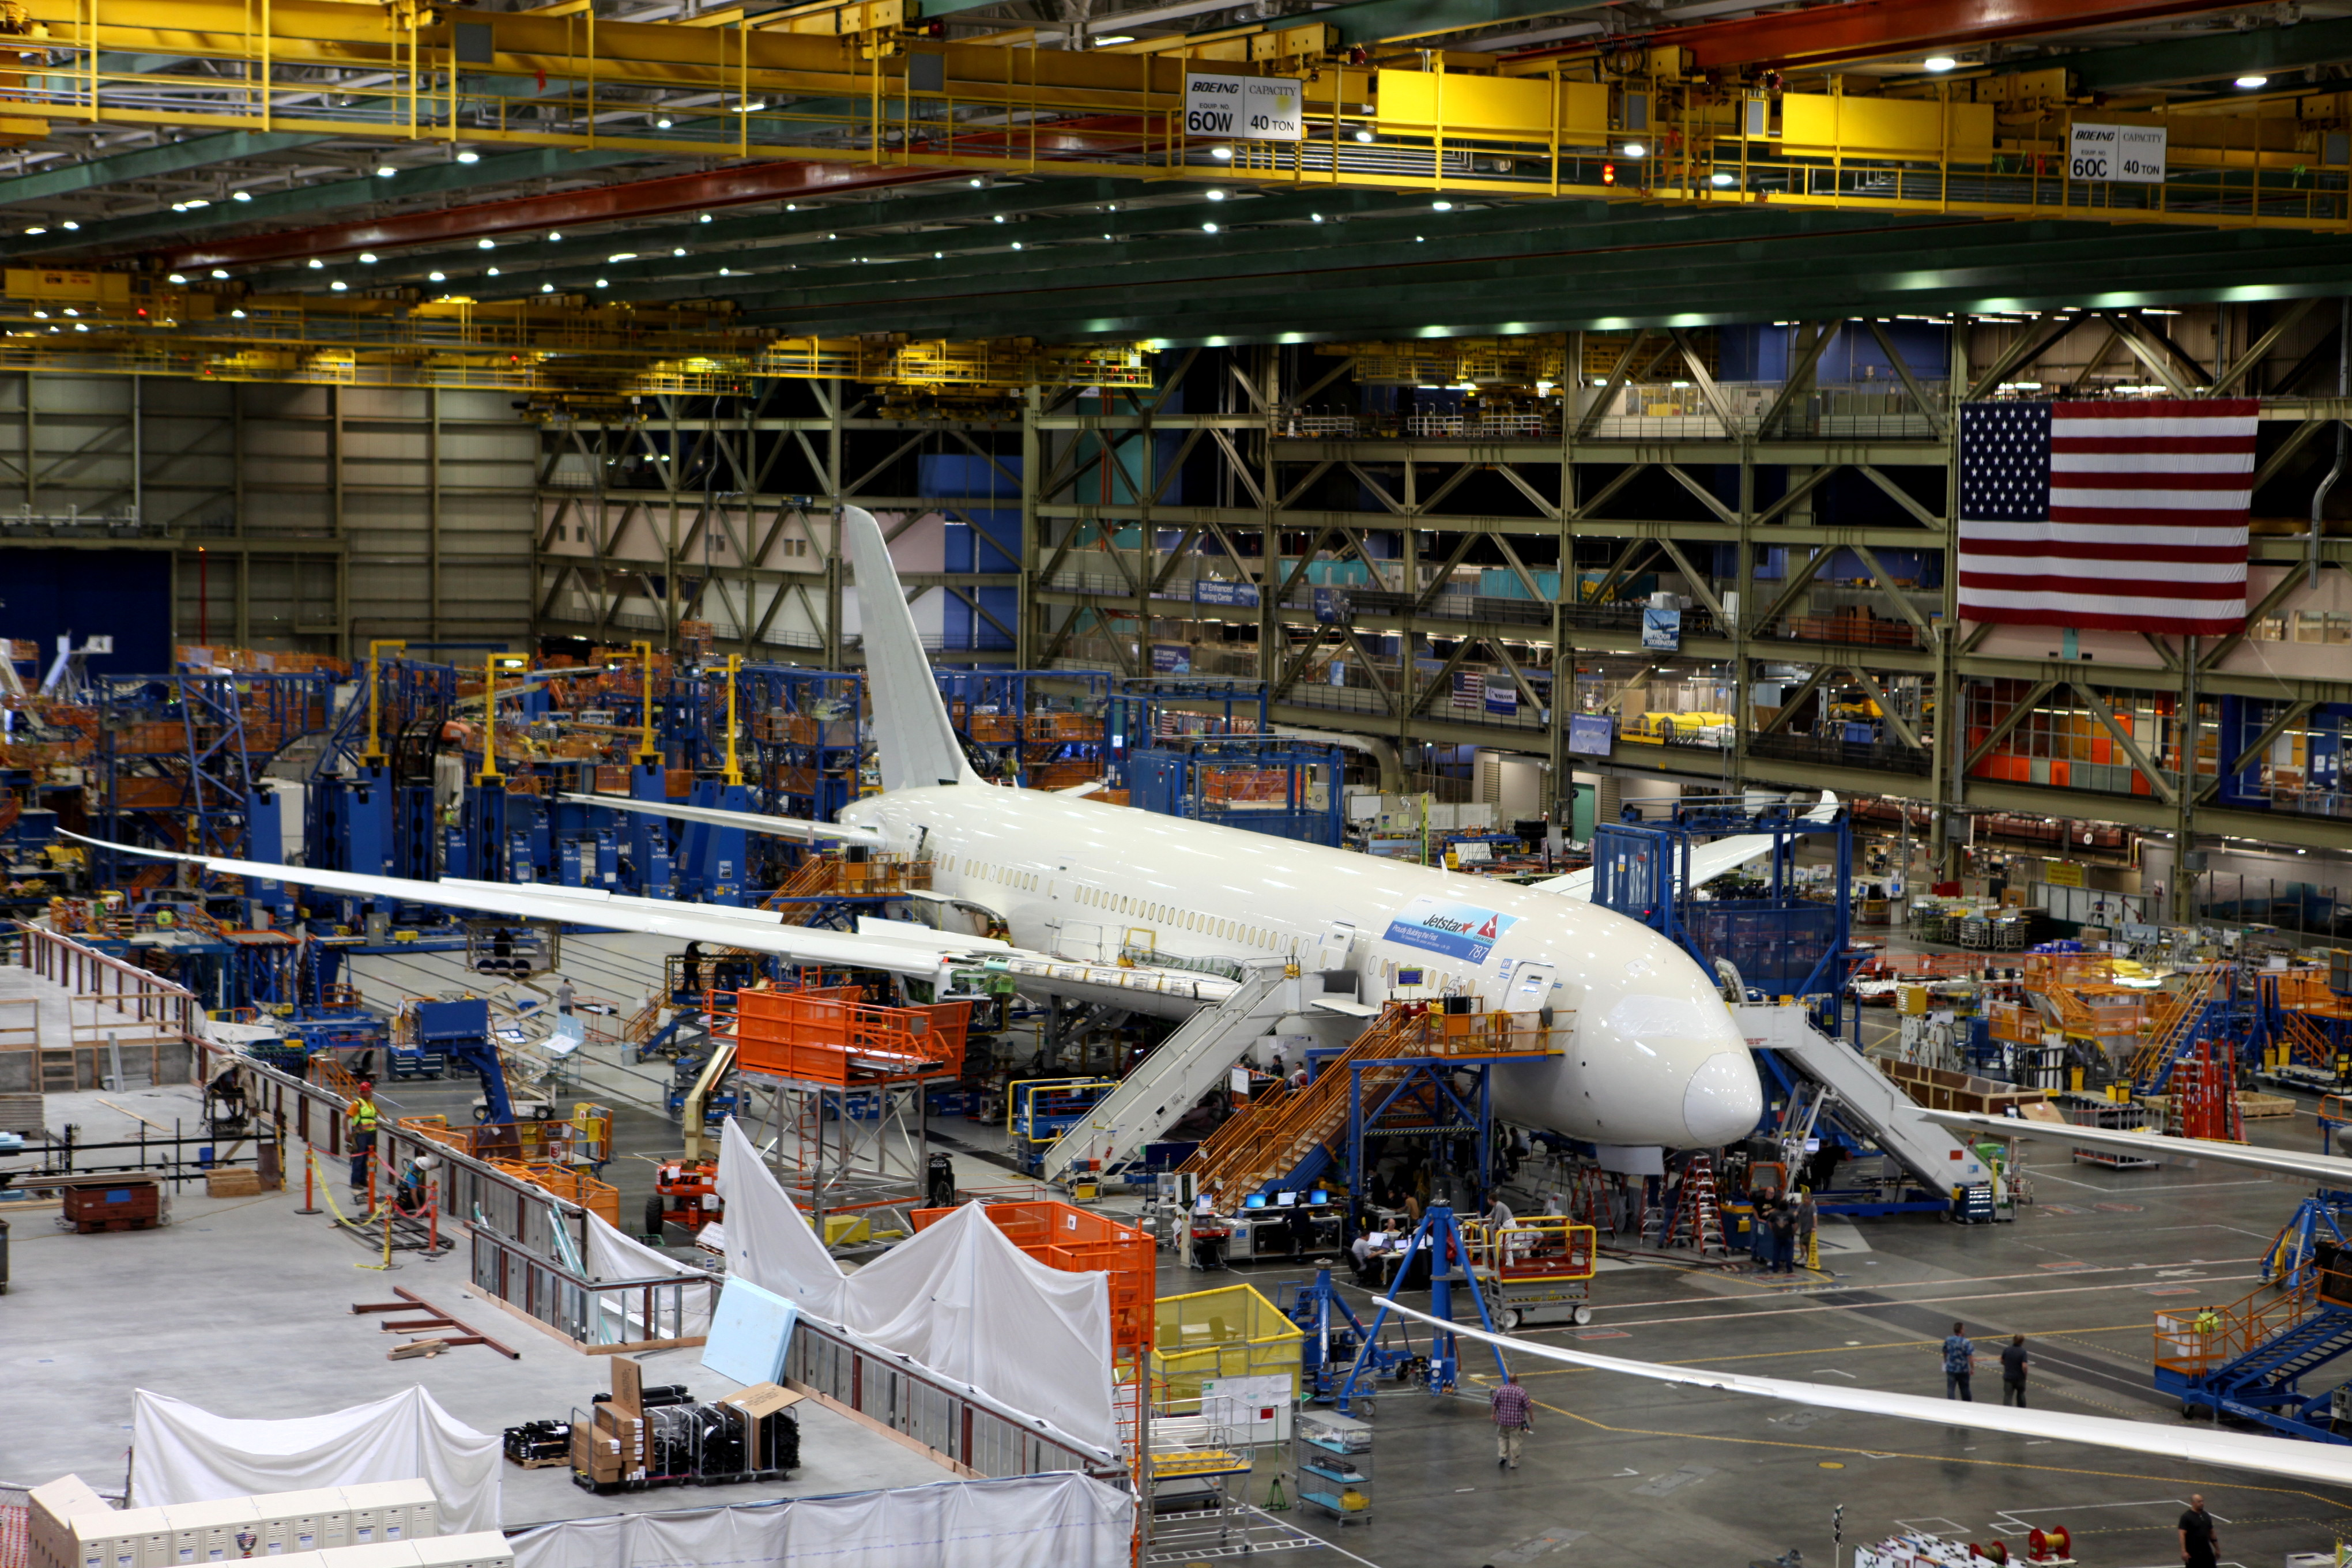 Jetstar's_first_787_on_the_production_line_(9132370198)